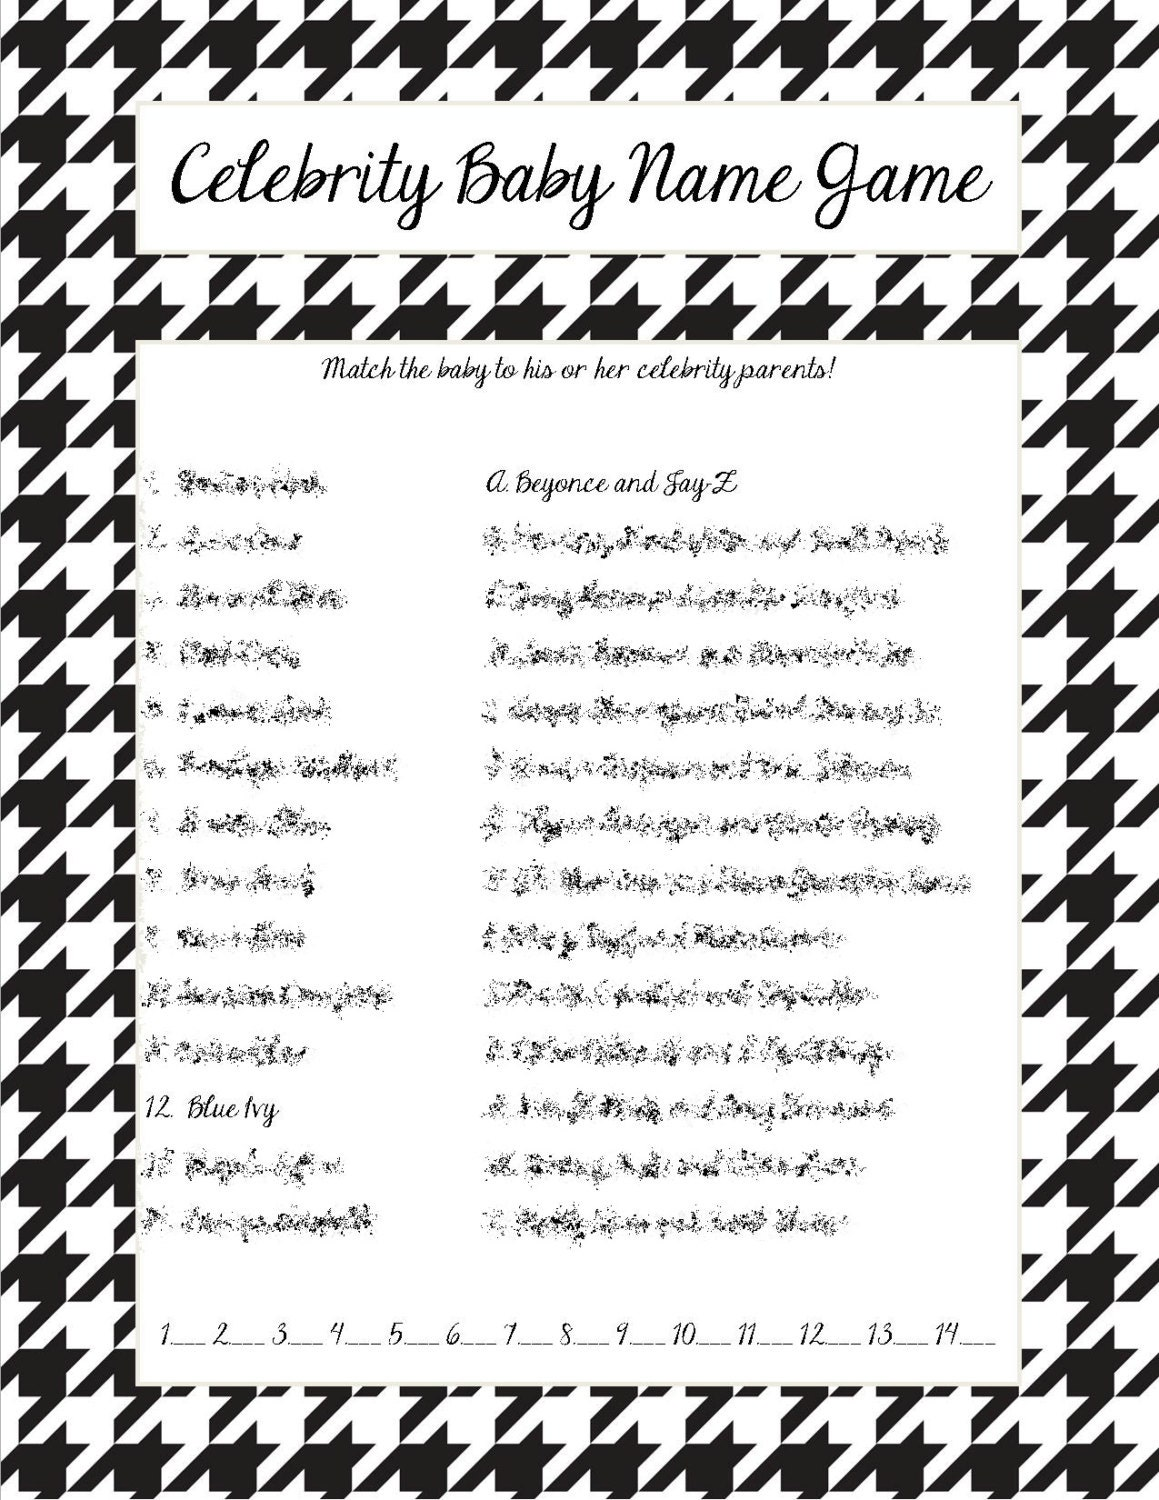 Celebrity baby name game black and white houndstooth border